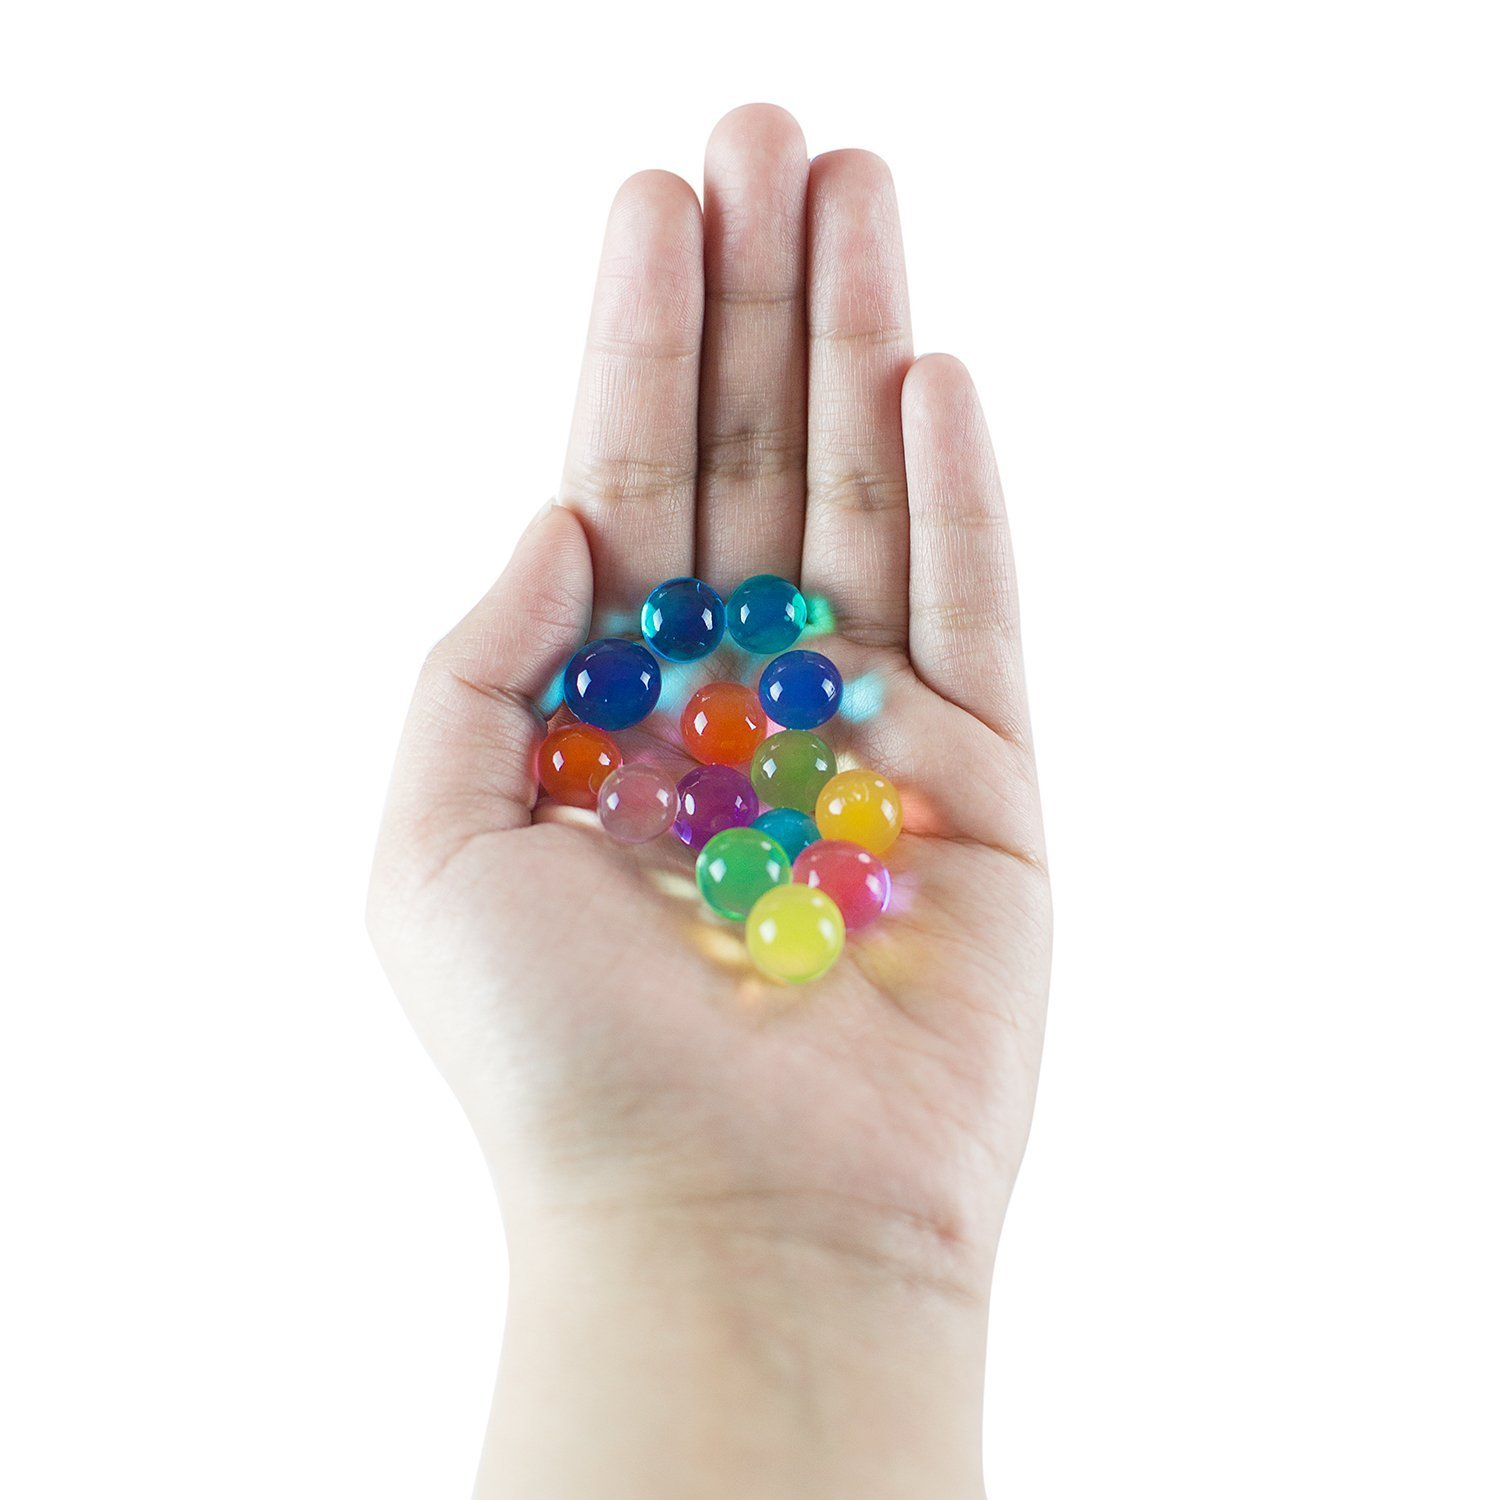 8 oz Bag, Makes 6 Gallons Super Z Outlet Rainbow Color Mix Sensory Toys Water Gel Pearls Mini Balls Beads for Children Home Decoration